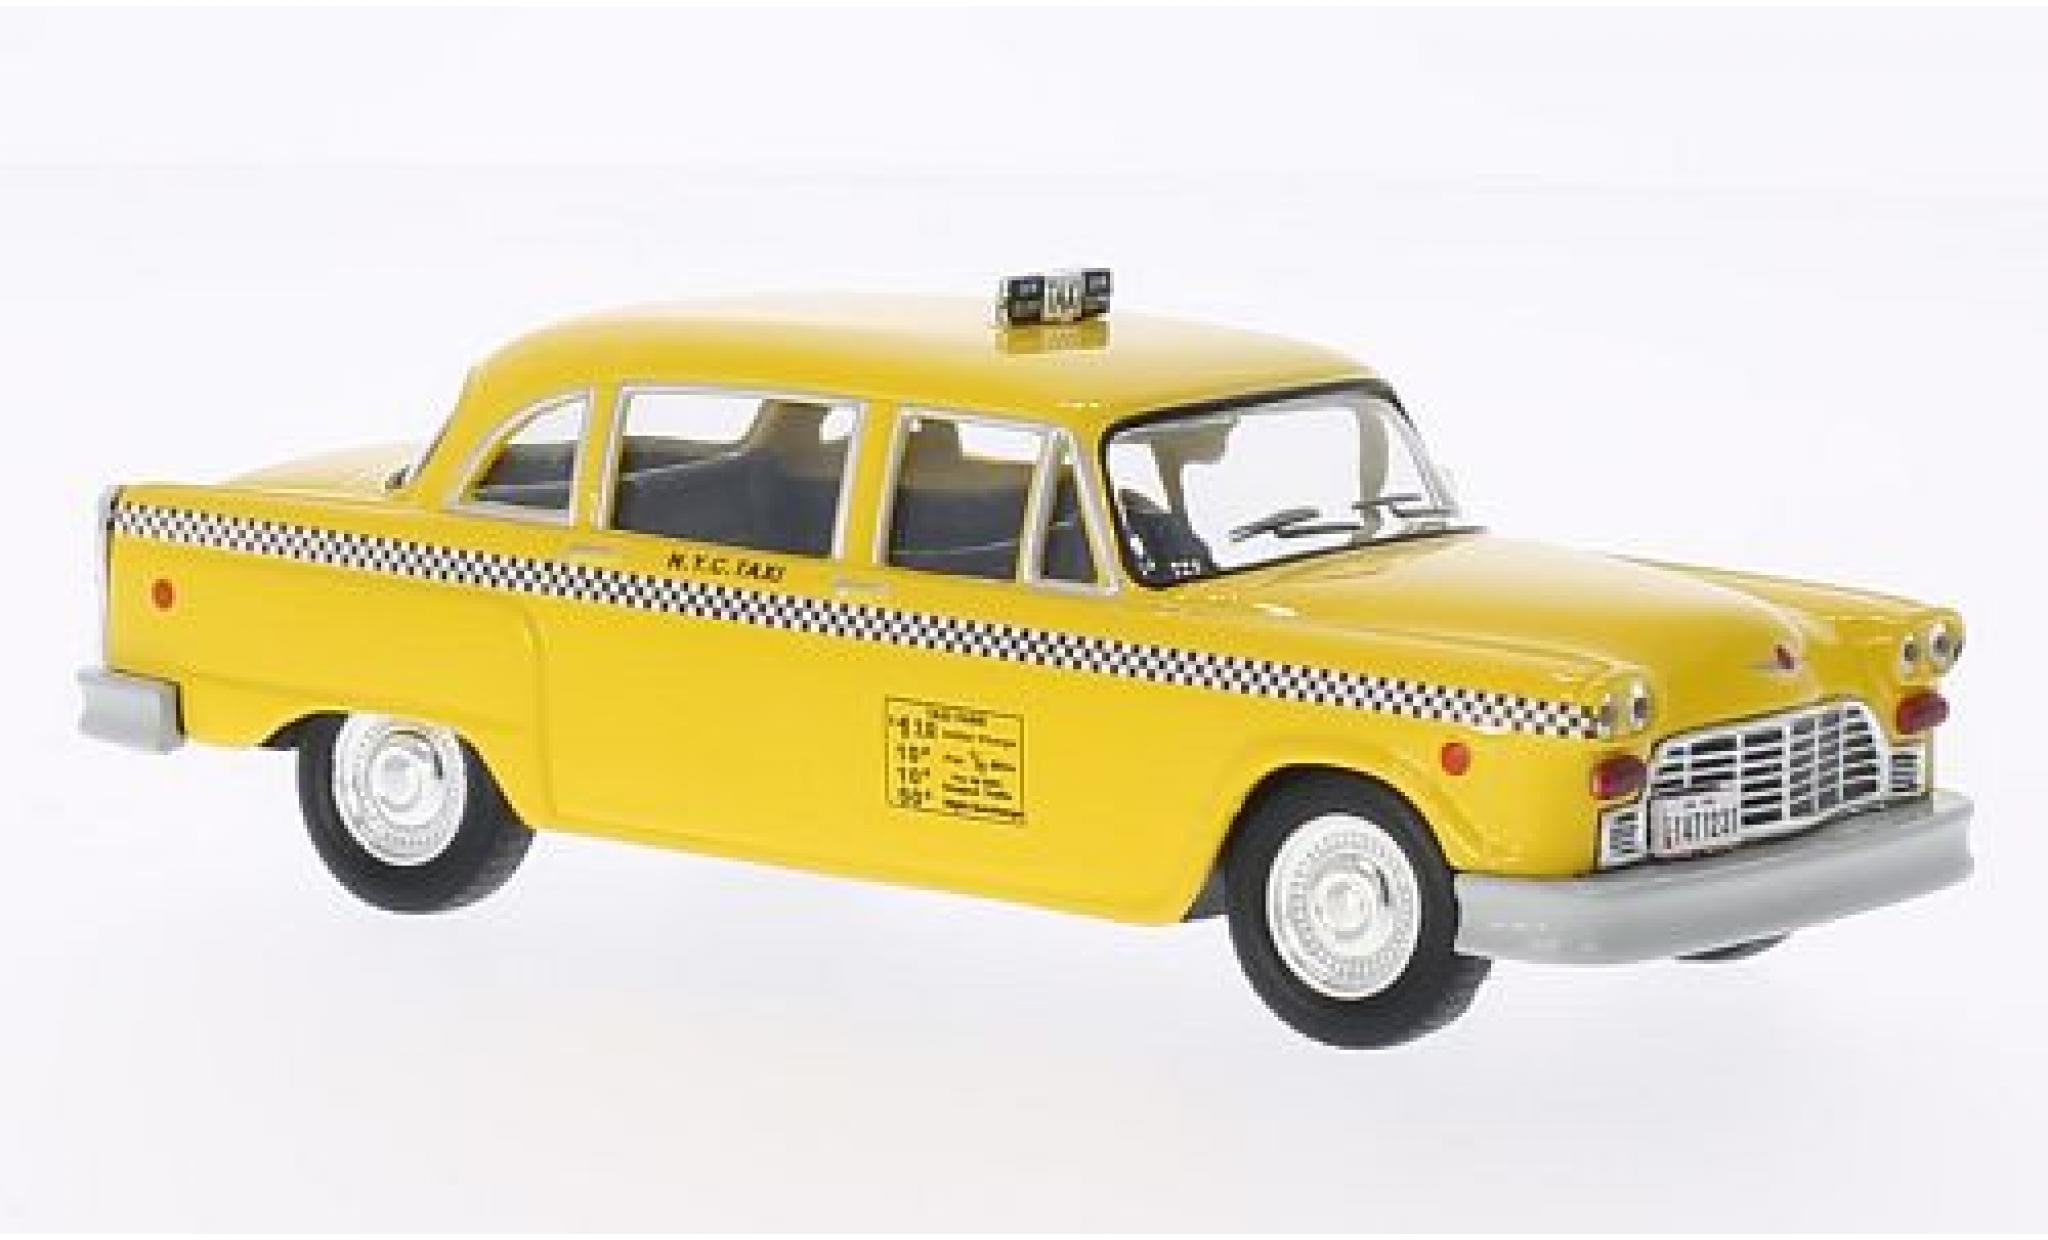 Checker Marathon 1/43 WhiteBox New York 1980 Taxi